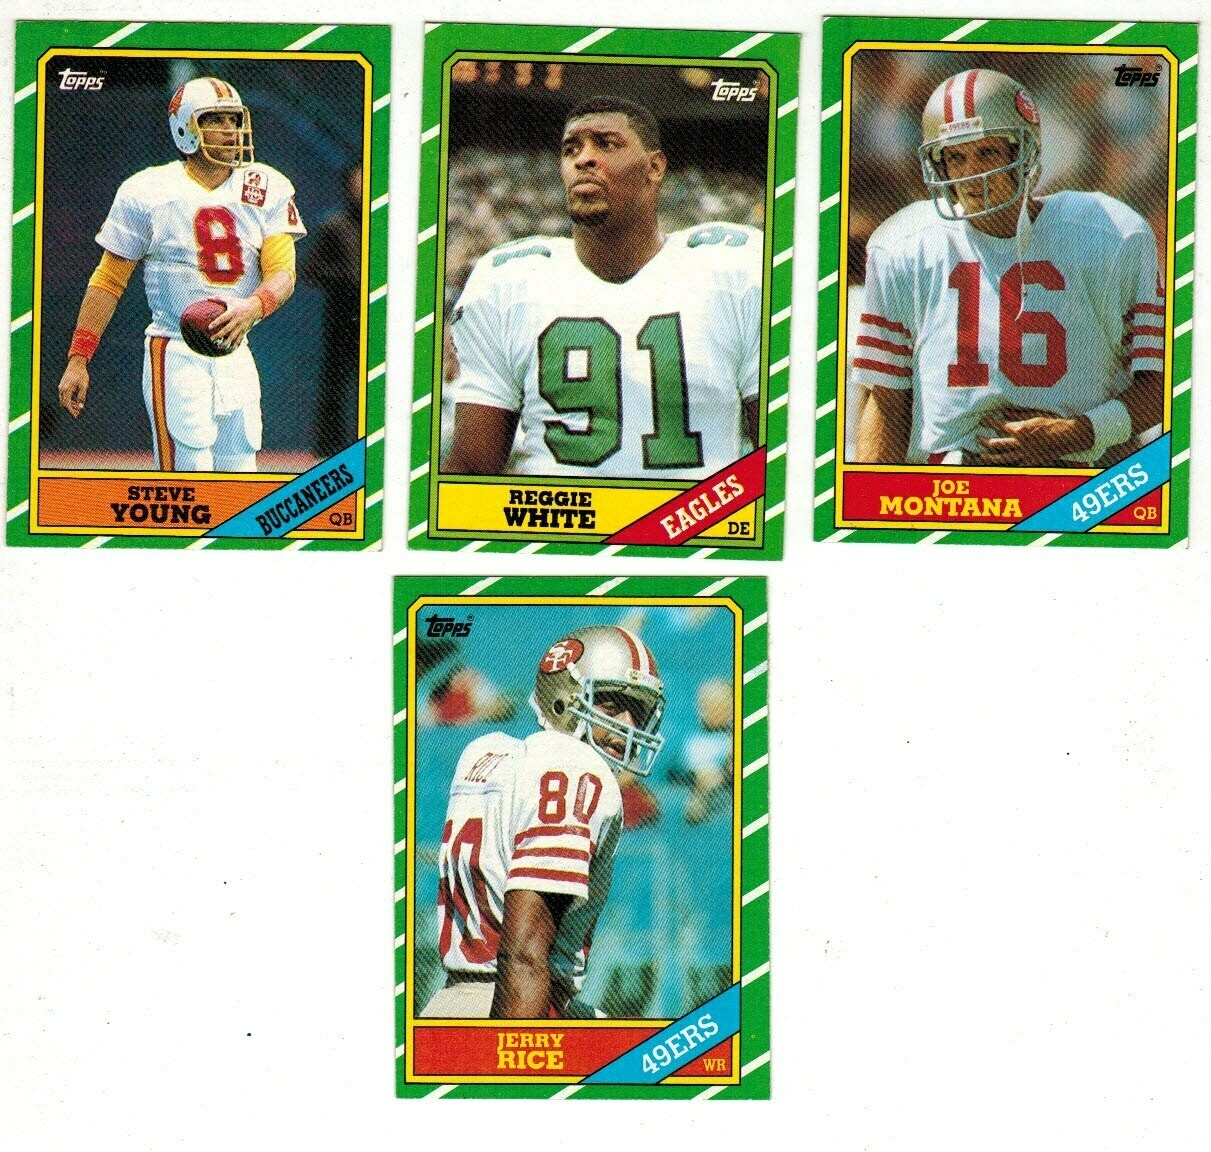 1986 Topps Football set-Rice rc, S.Young rc, Reg.White rc, Montana, Marino Ex+ List $100